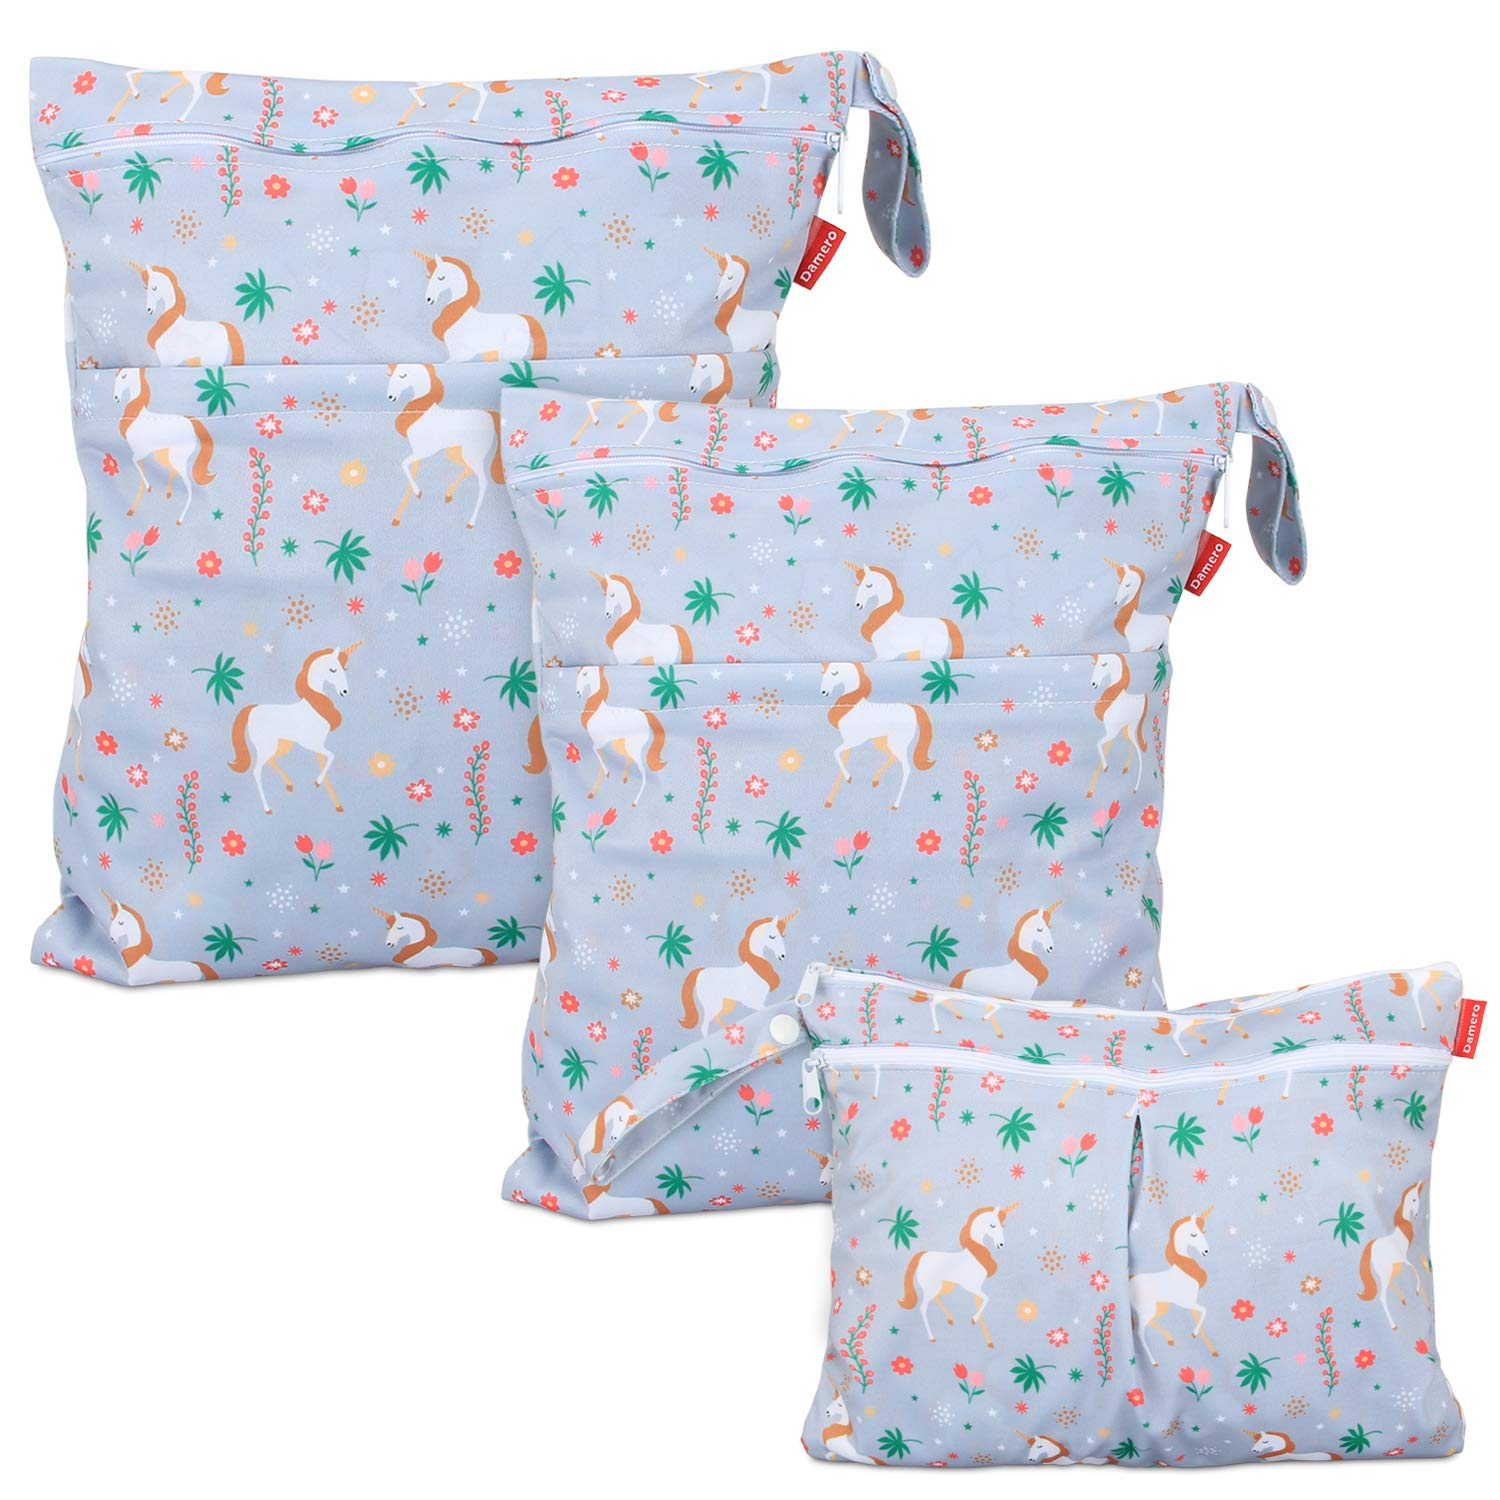 Damero 3Pcs Wet Dry Bag with 2 Zippered Pockets and Snap Handle for Cloth Diaper, Swimsuit, Clothes, Ideal for Travel, Exercise, Daycare, Roomy and Water-Resistant (Unicorn)